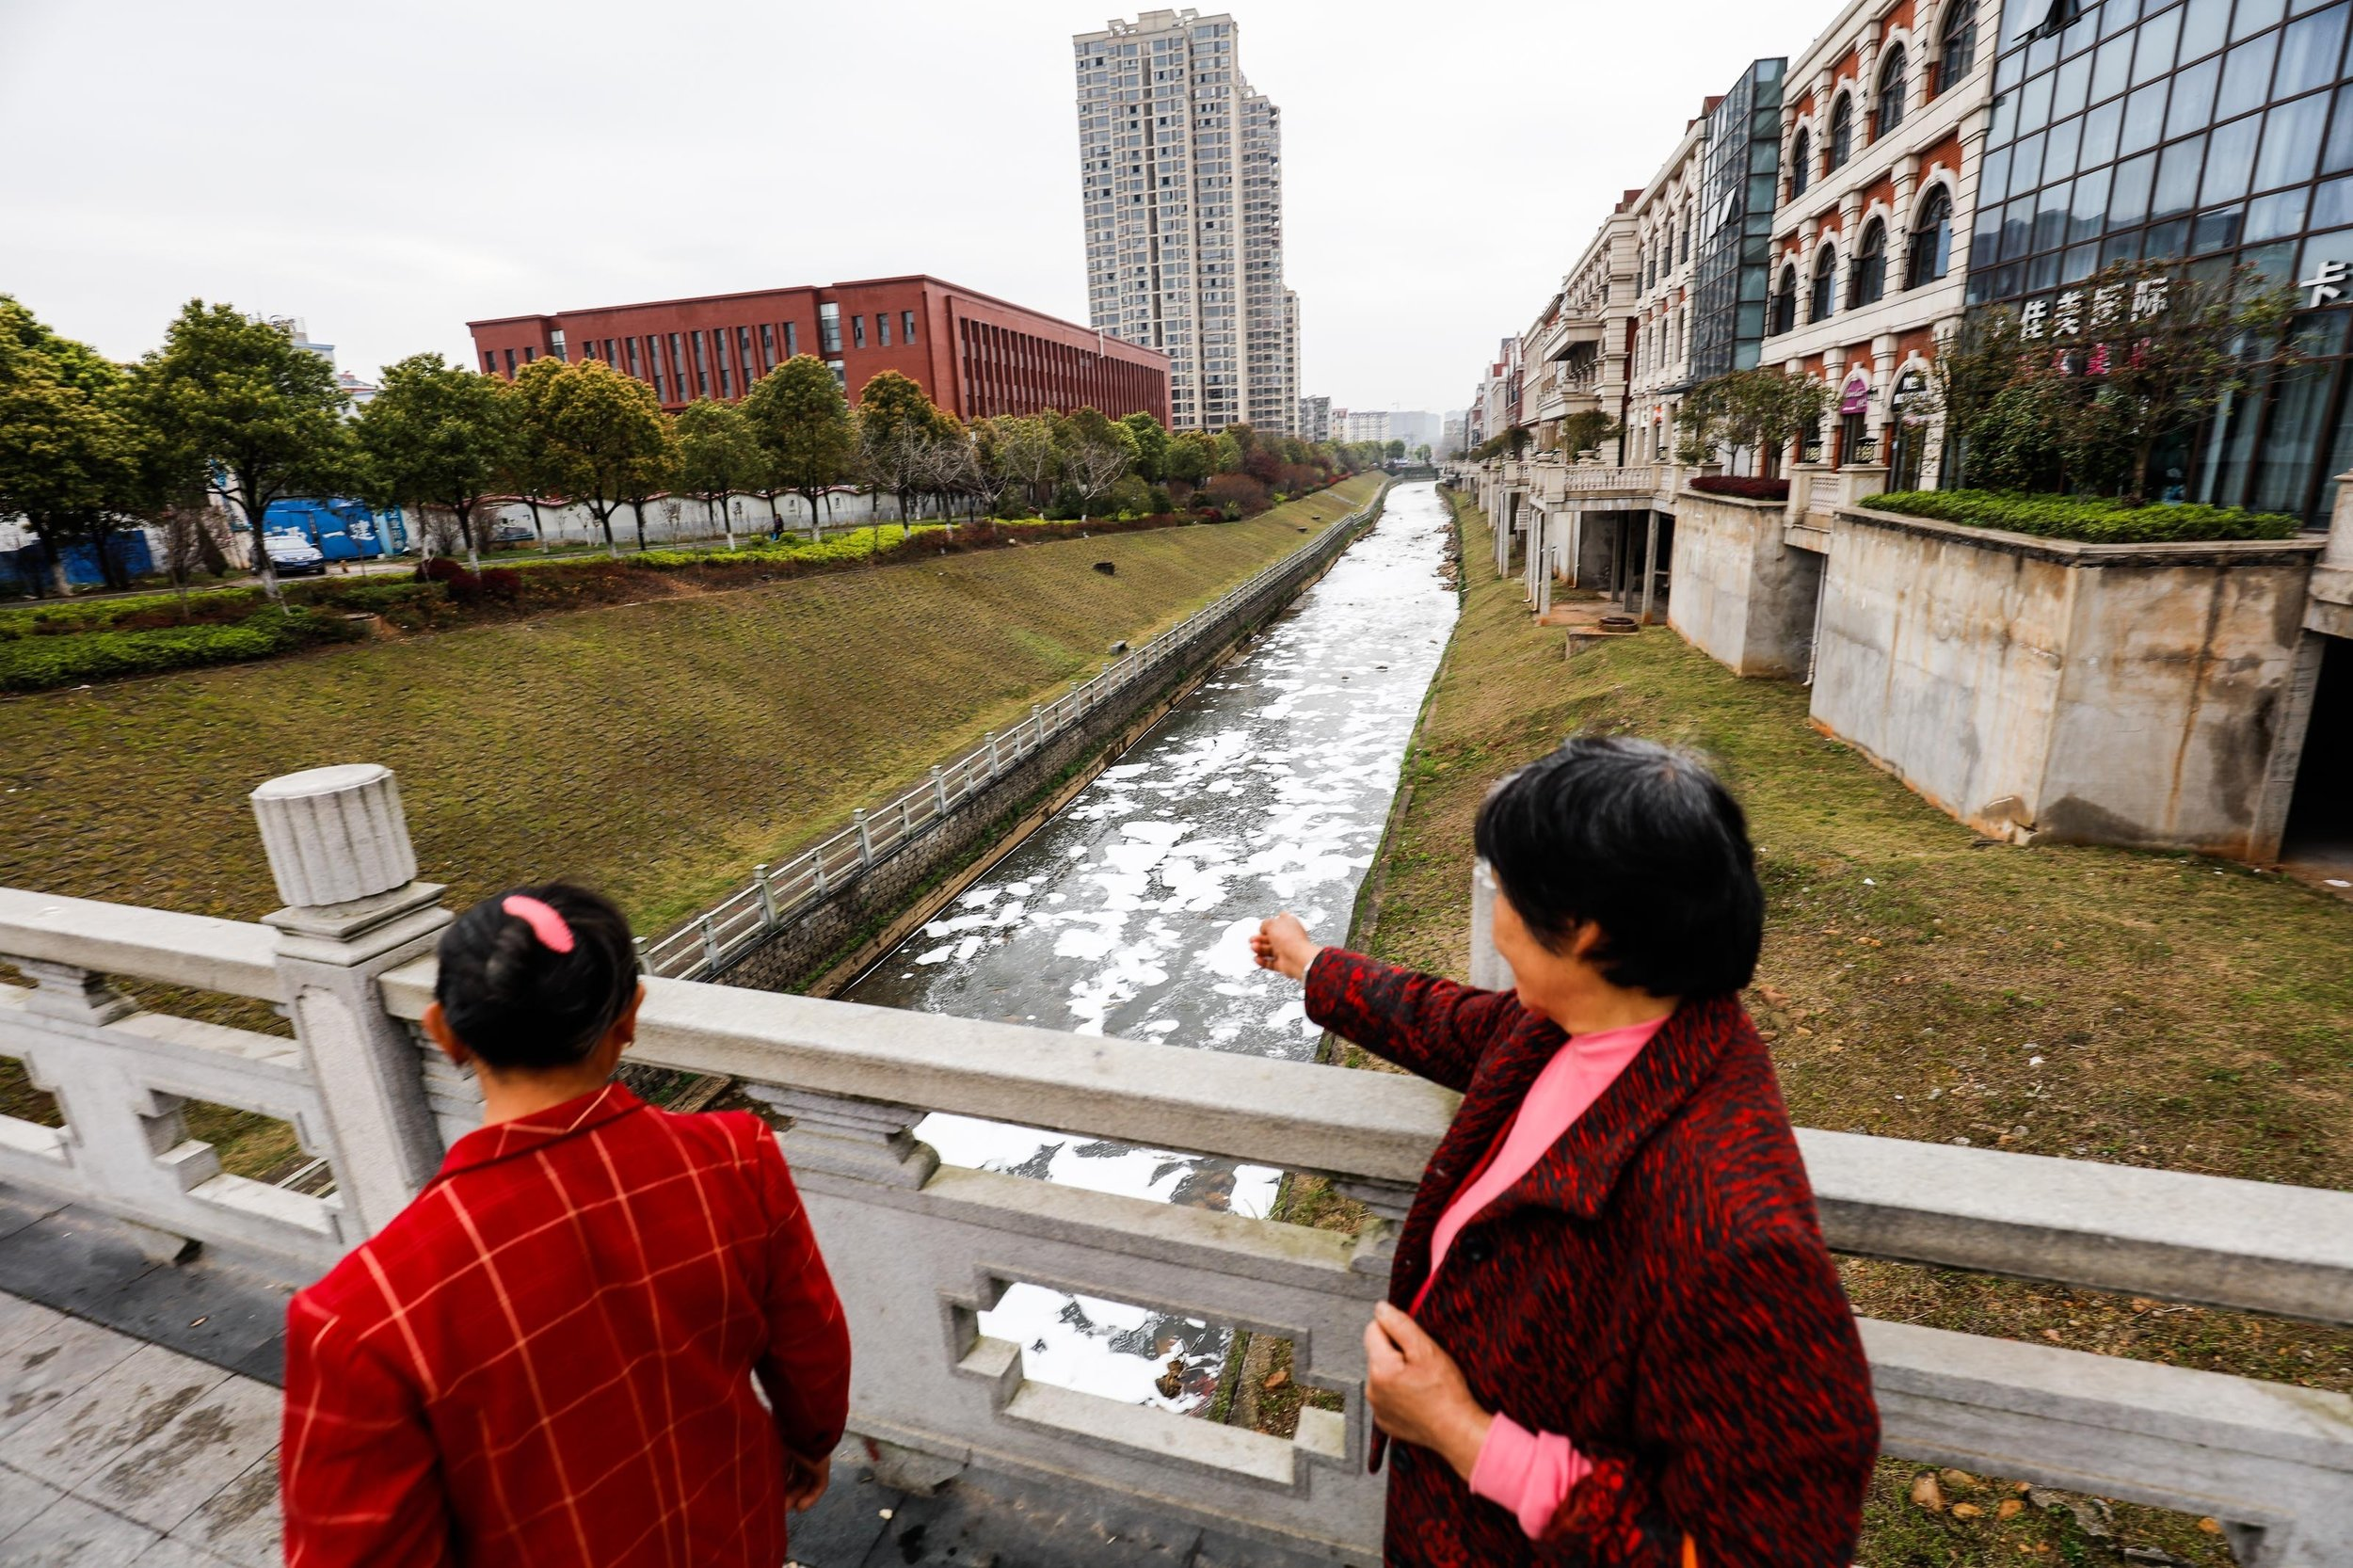 stock-photo-jiangxi-china-march-jiangxi-jiujiang-a-city-of-river-water-pollution-a-large-number-of-610146872.jpg